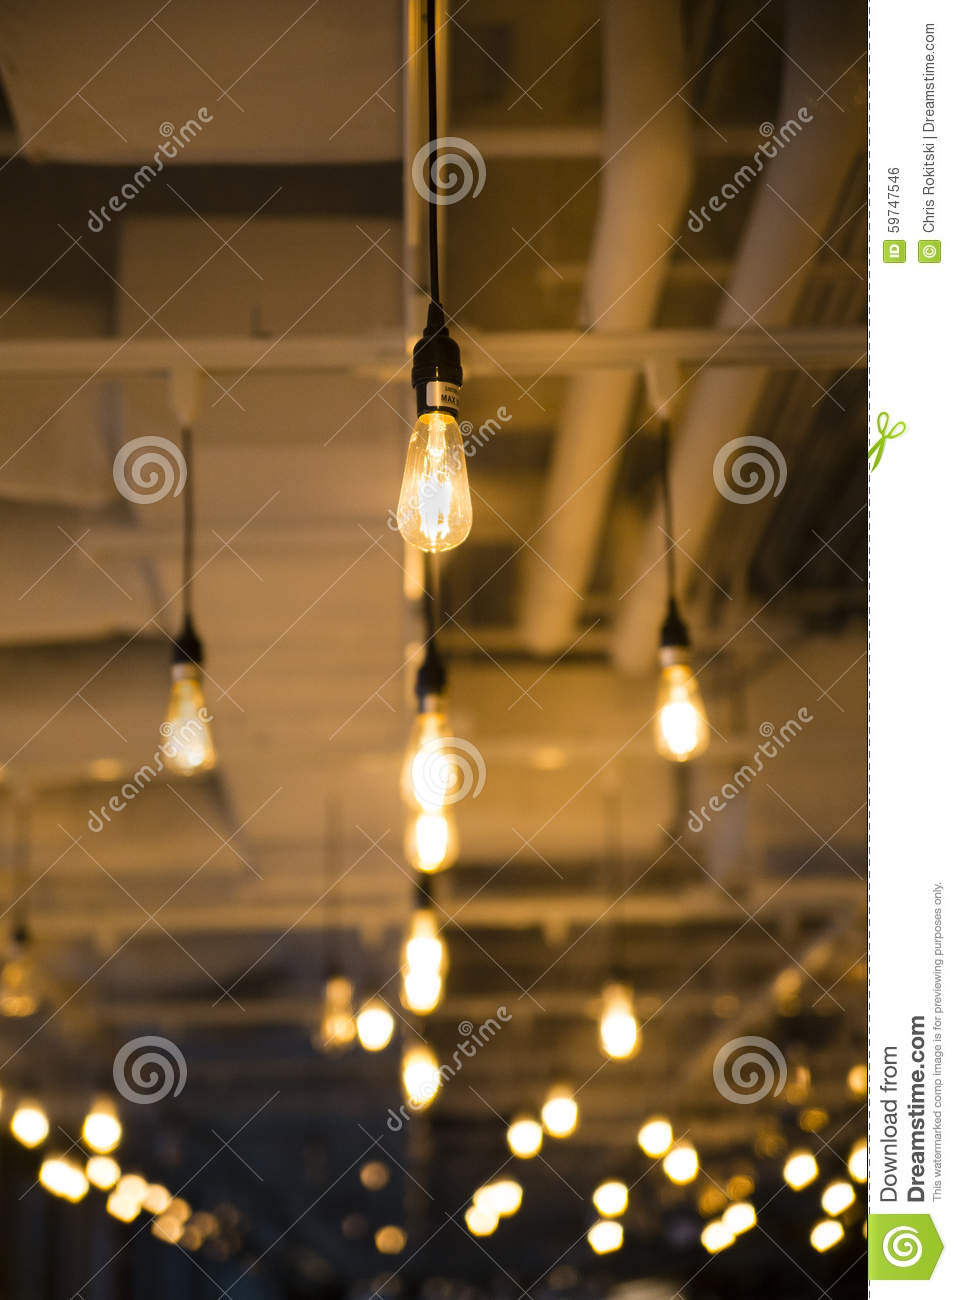 bare bulb ceiling lights stock photo image of interior 59747546